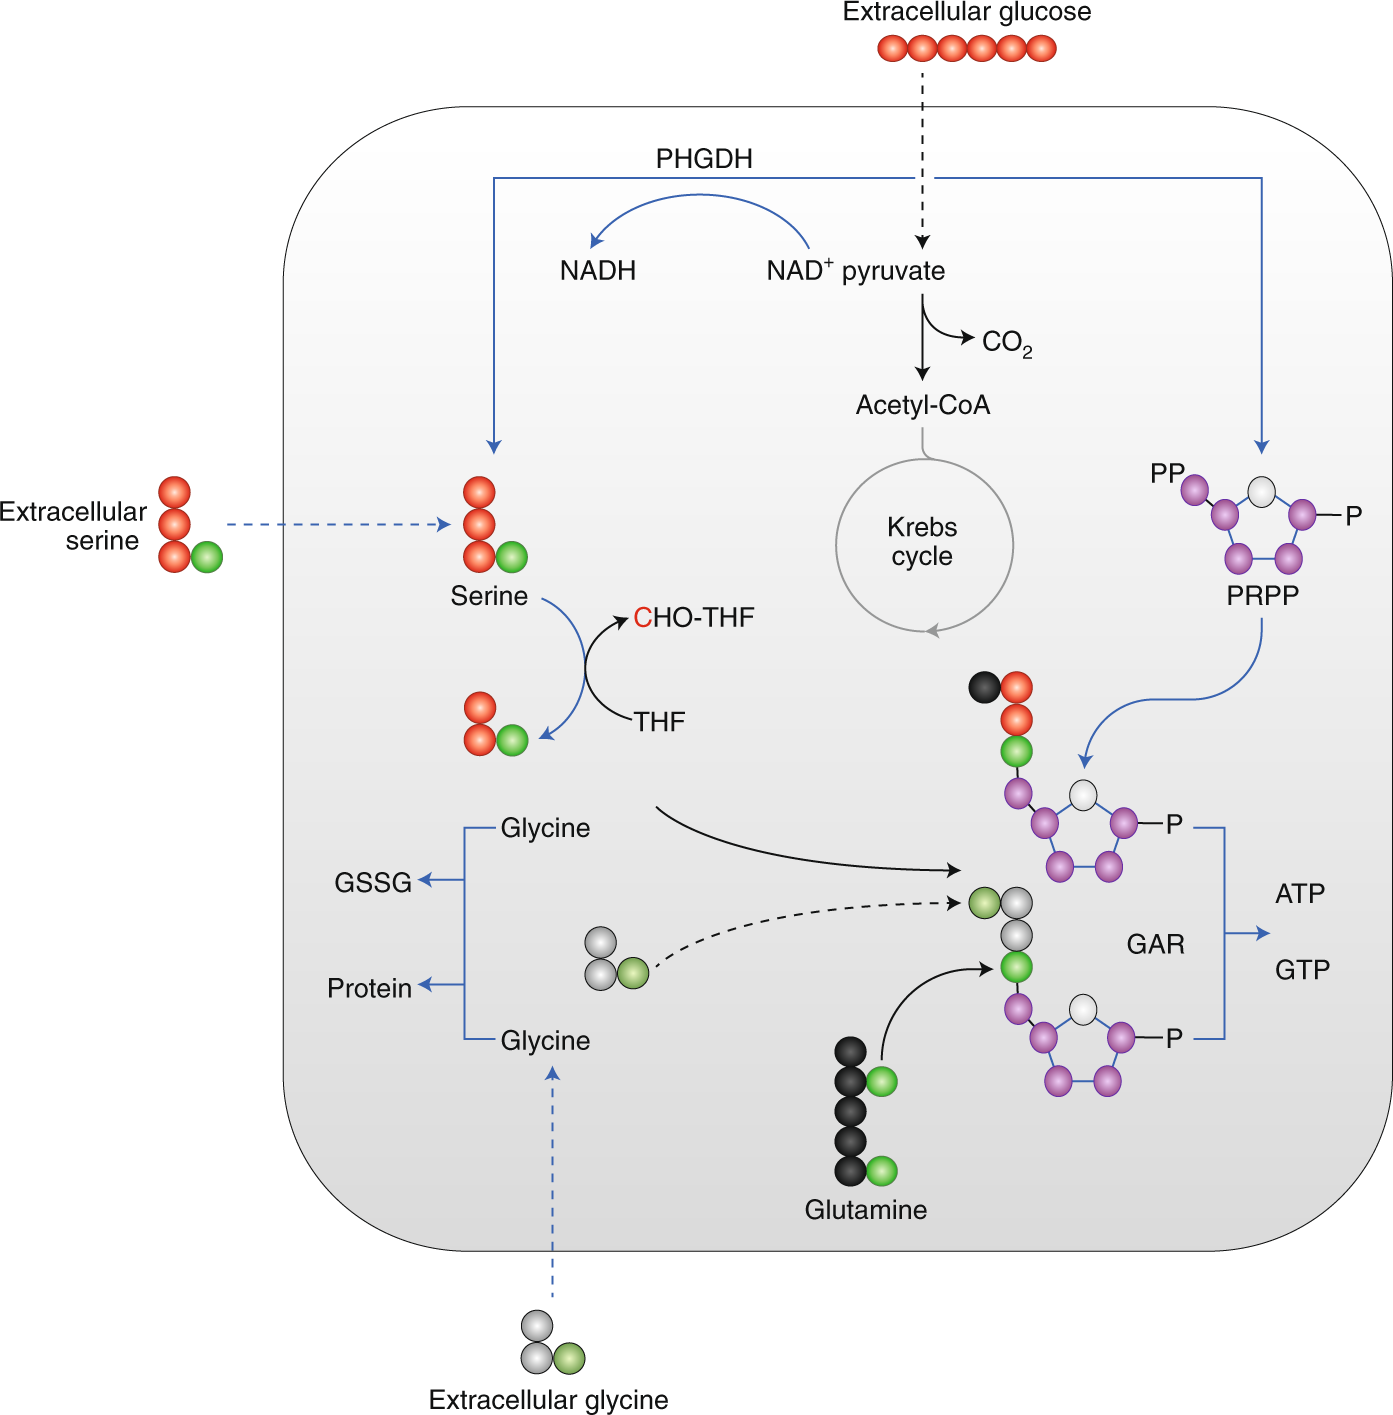 Essentiality of non-essential amino acids for tumour cells and tumorig